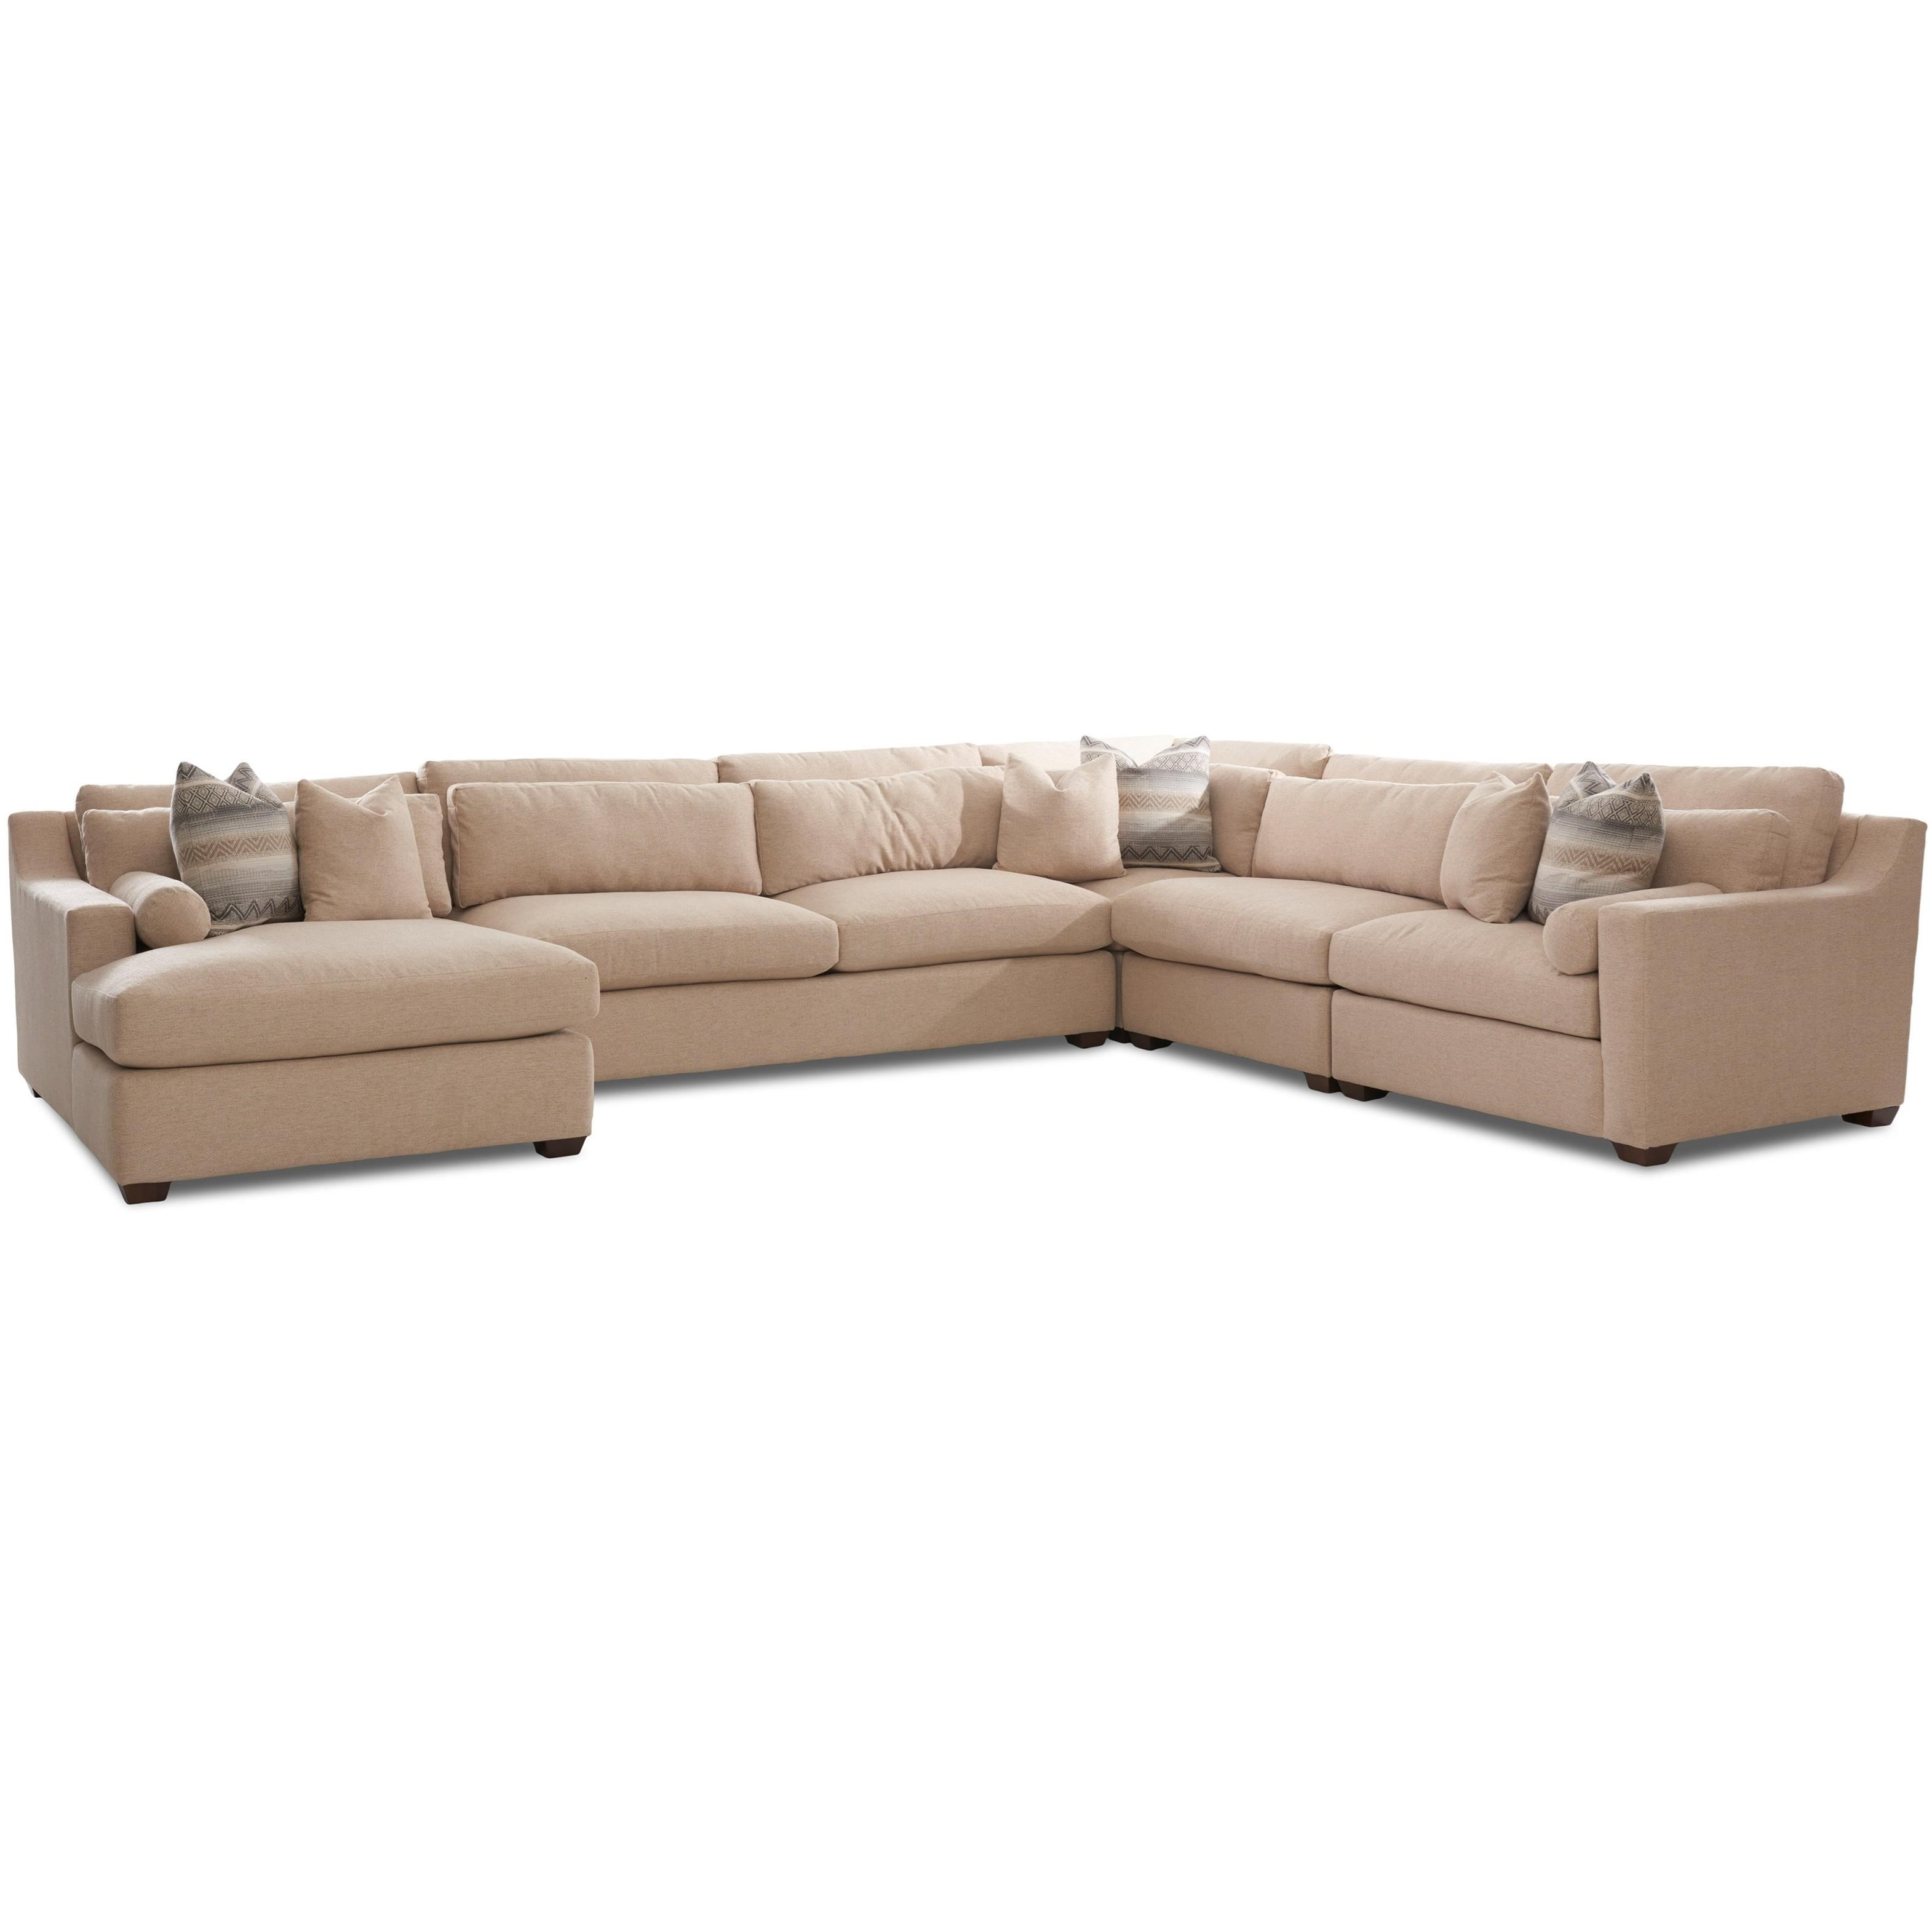 Roan Sofa Sectional by Klaussner at Northeast Factory Direct